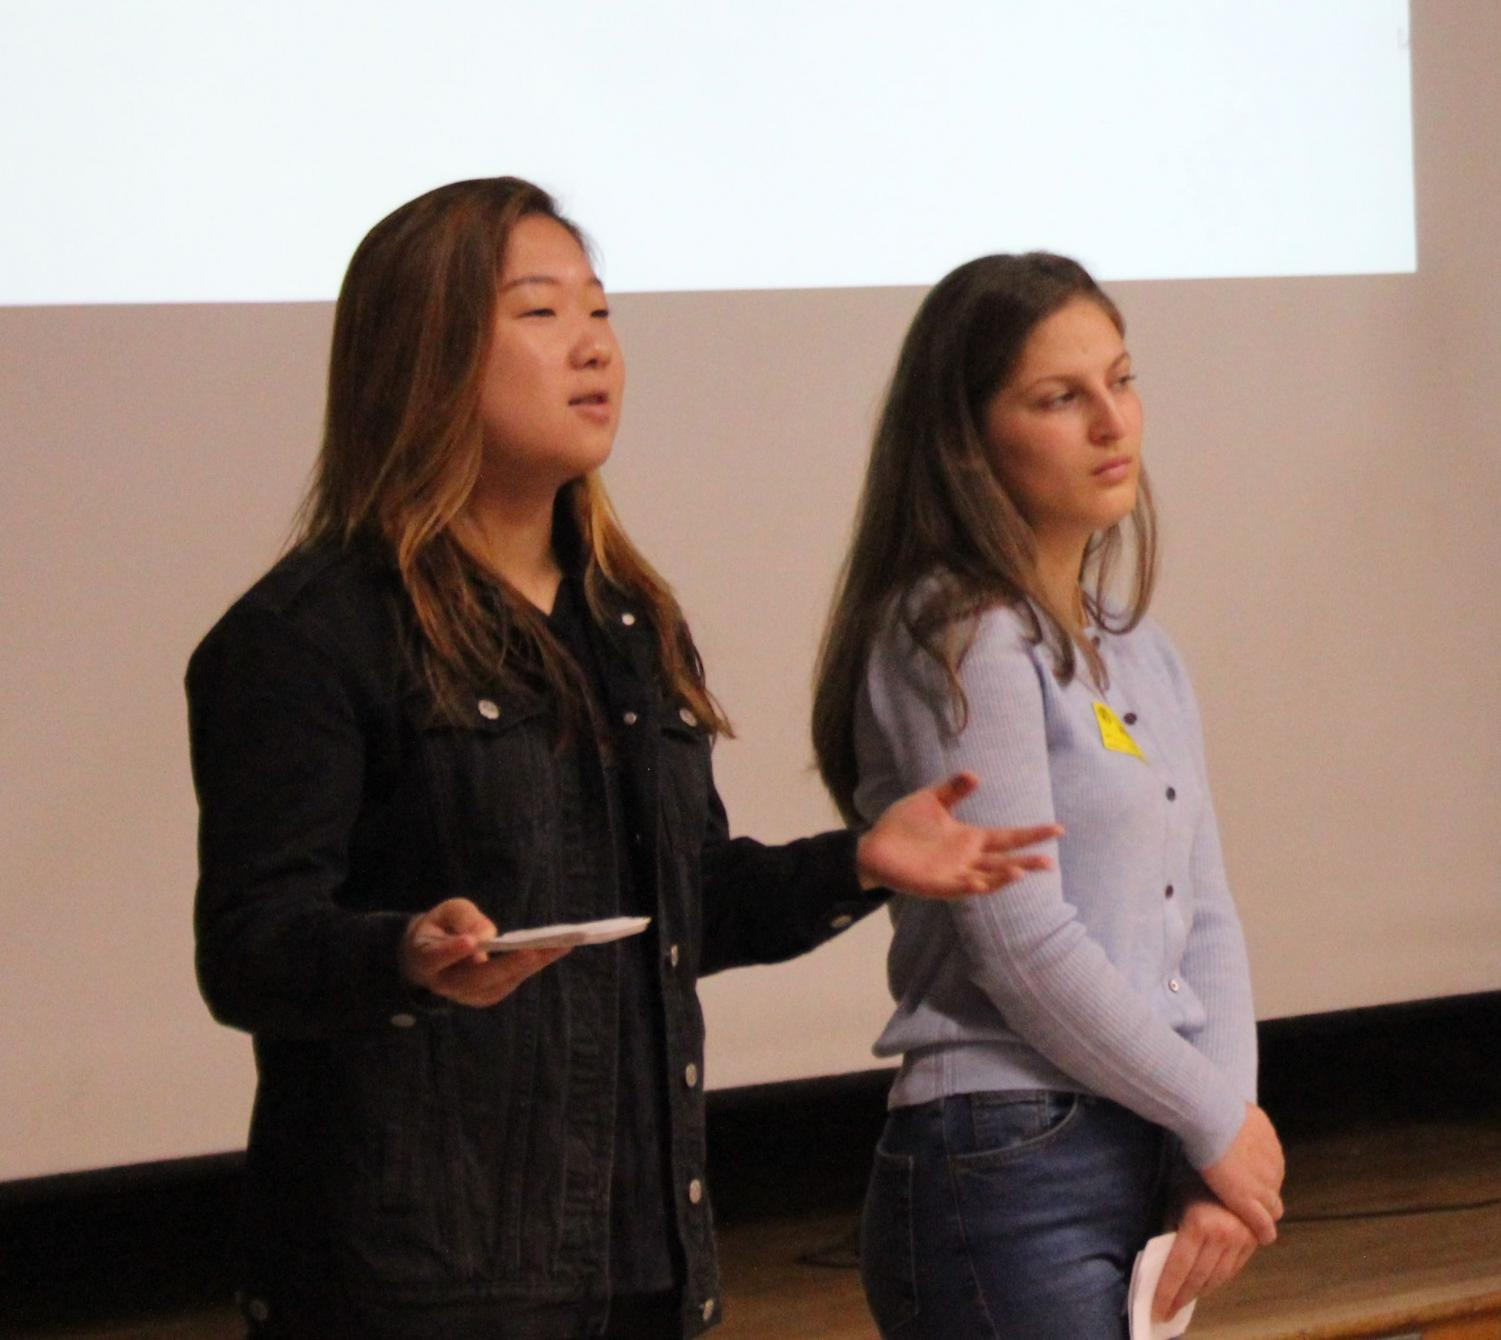 Presenters Hannah Ji and Madeline Mckay, from The Talk Project, educated students about sexual violence on March 23.